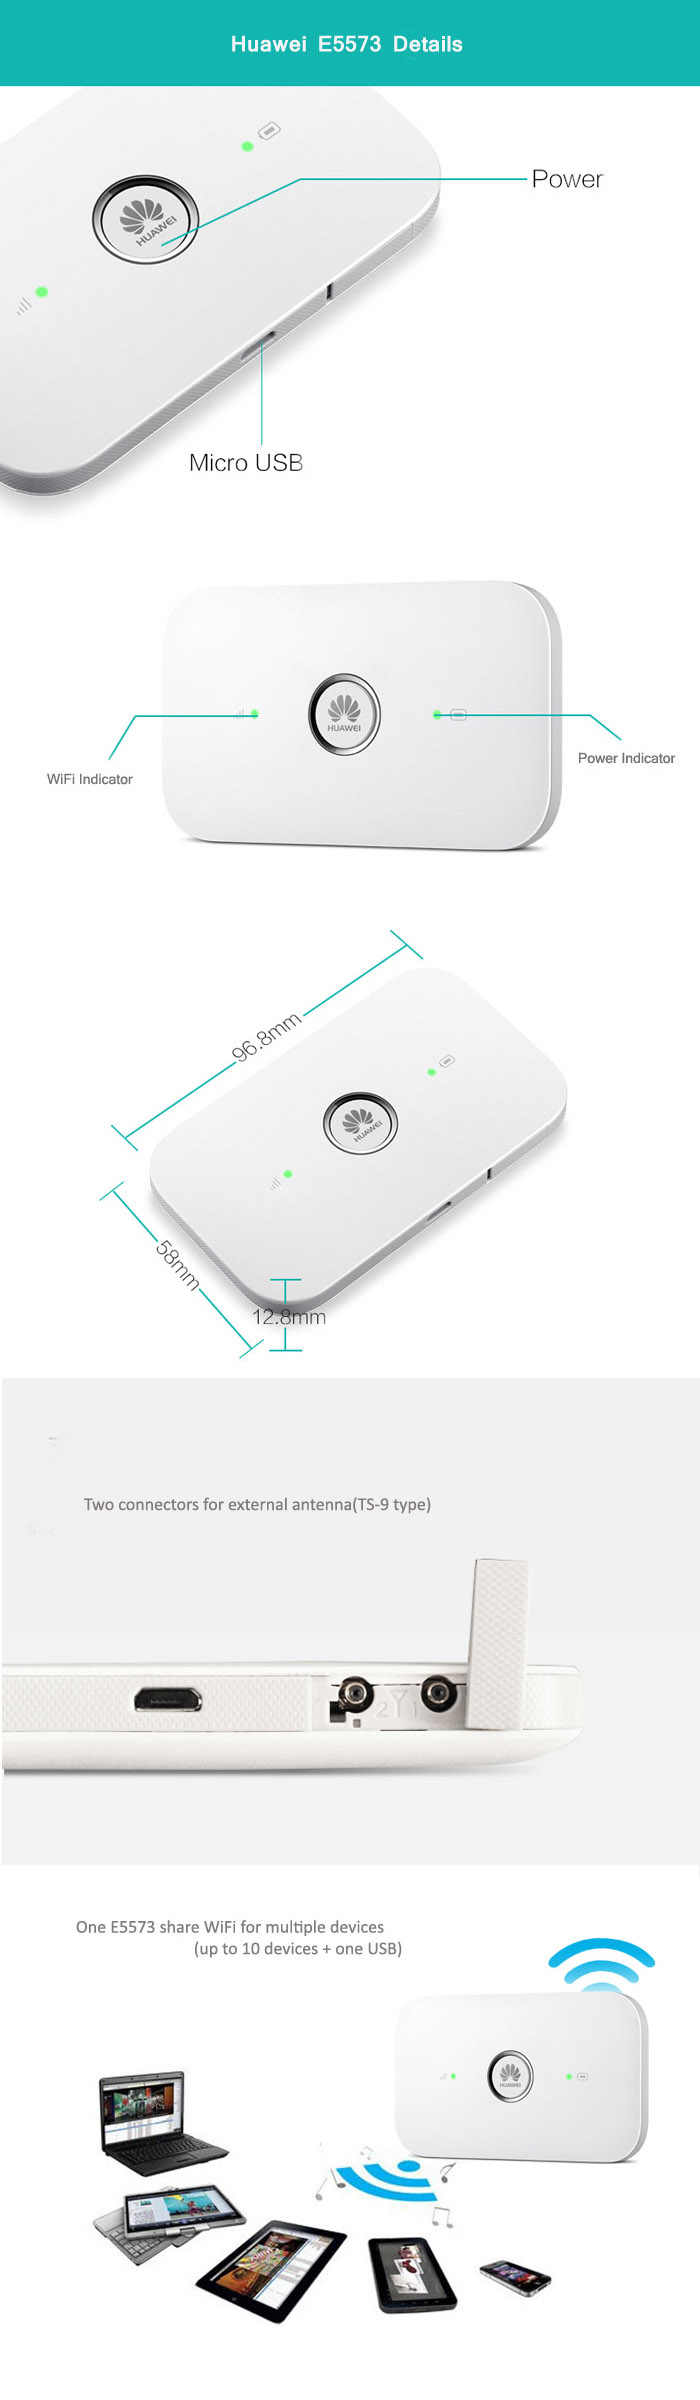 unlocked huawei e5573 4g wifi modem E5573s 606 CAT4 4G LTE WiFi Router Wireless Mobile Wi Fi router 4g sim card with antenna